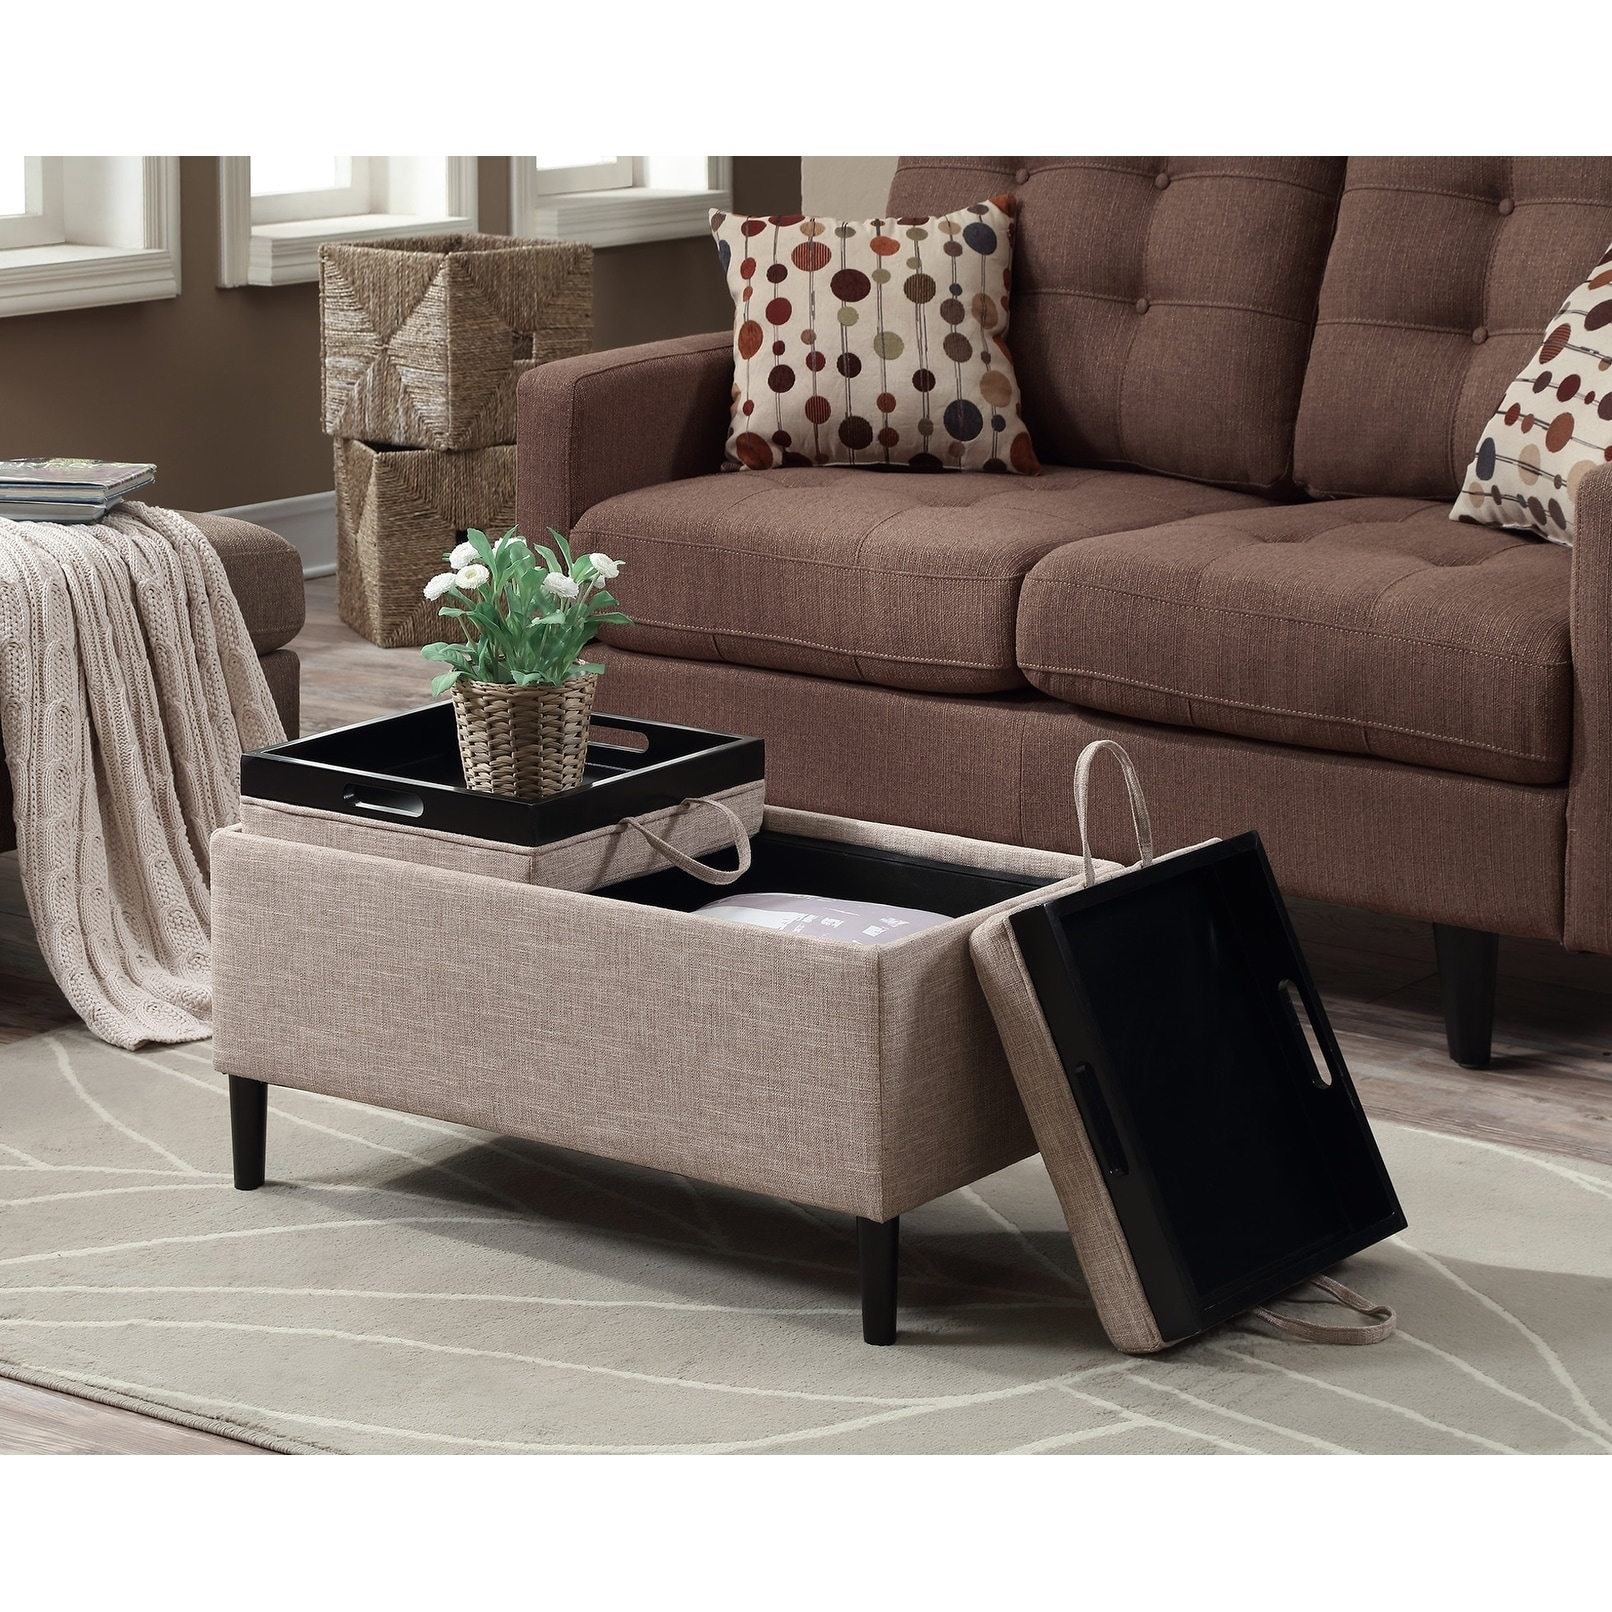 Convenience Concepts Designs4comfort Magnolia Storage Ottoman With Trays Thumbnail